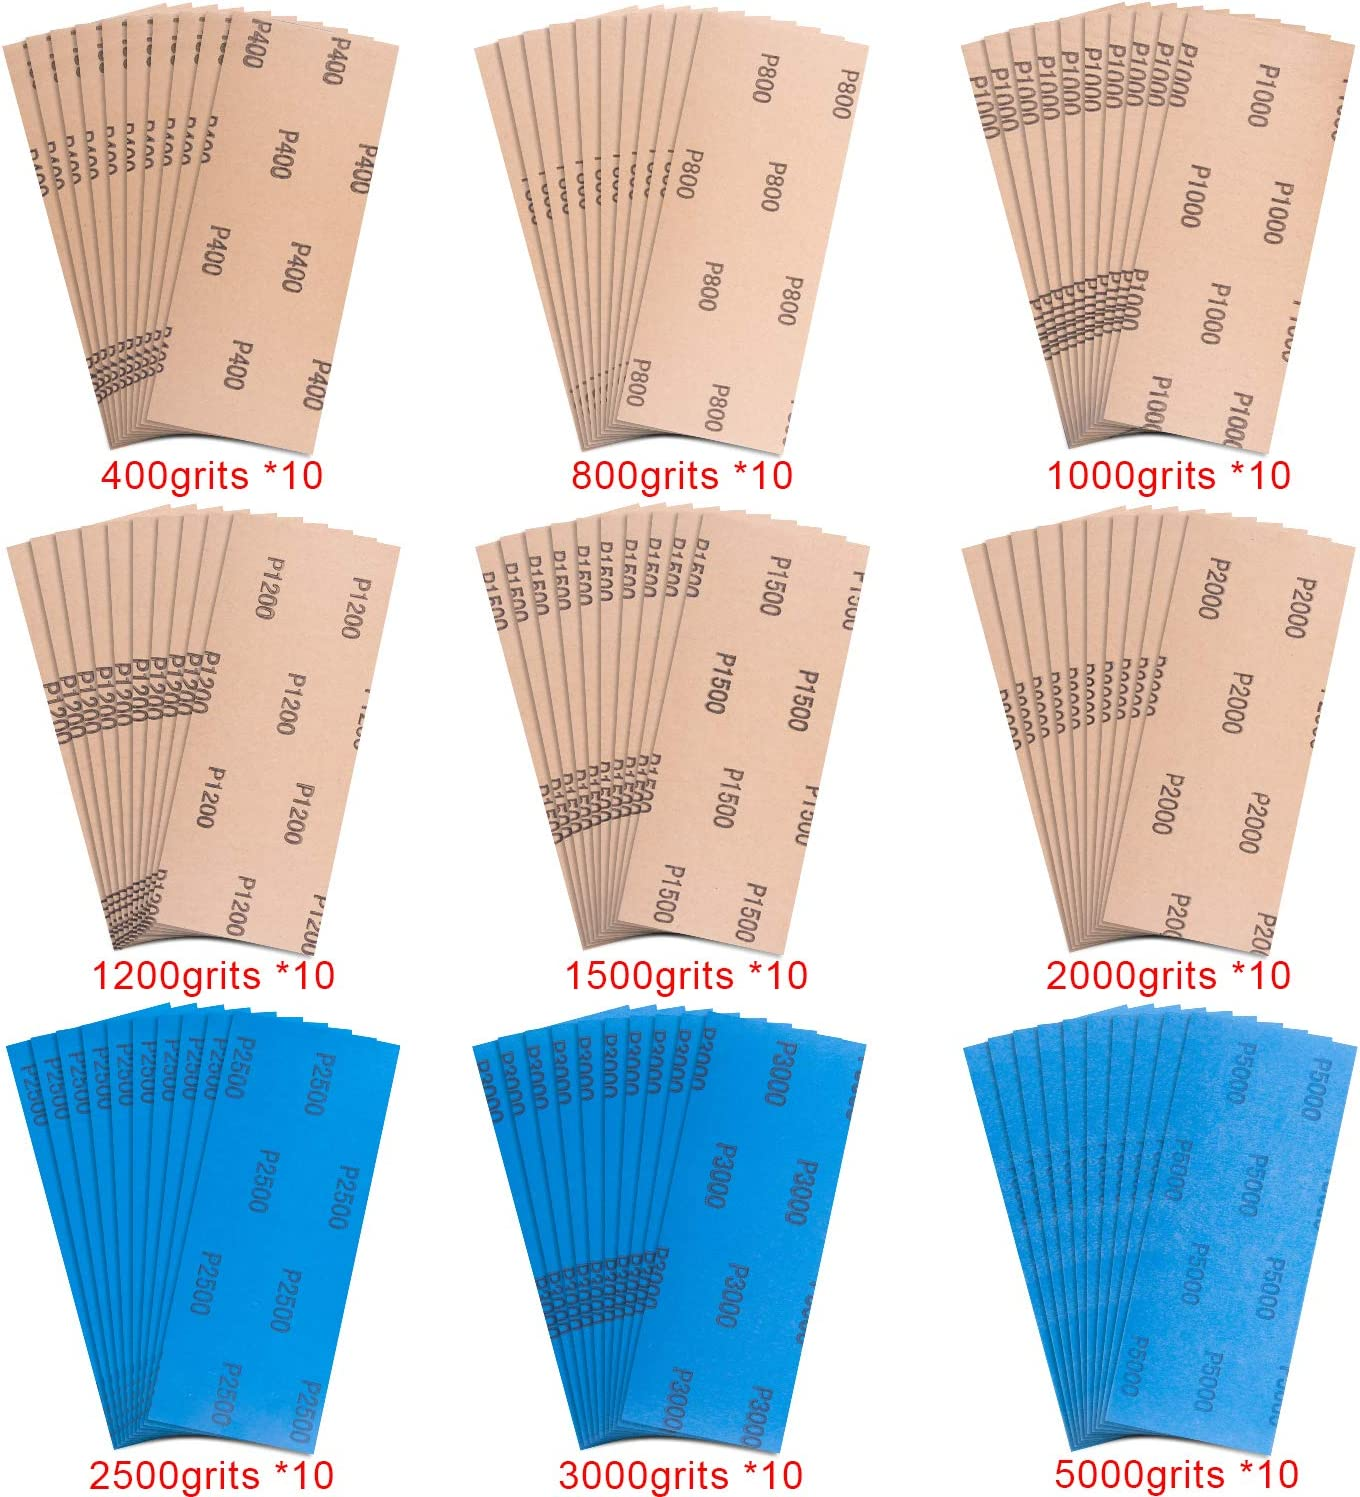 SIQUK 90 Pieces Wet and Dry Sandpaper Assortment 400 to 5000 Grit Sandpaper Assorted 9 x 3.6 Inches Silicon Carbide Abrasive Paper for Automotive Sanding Wood Furniture Finishing